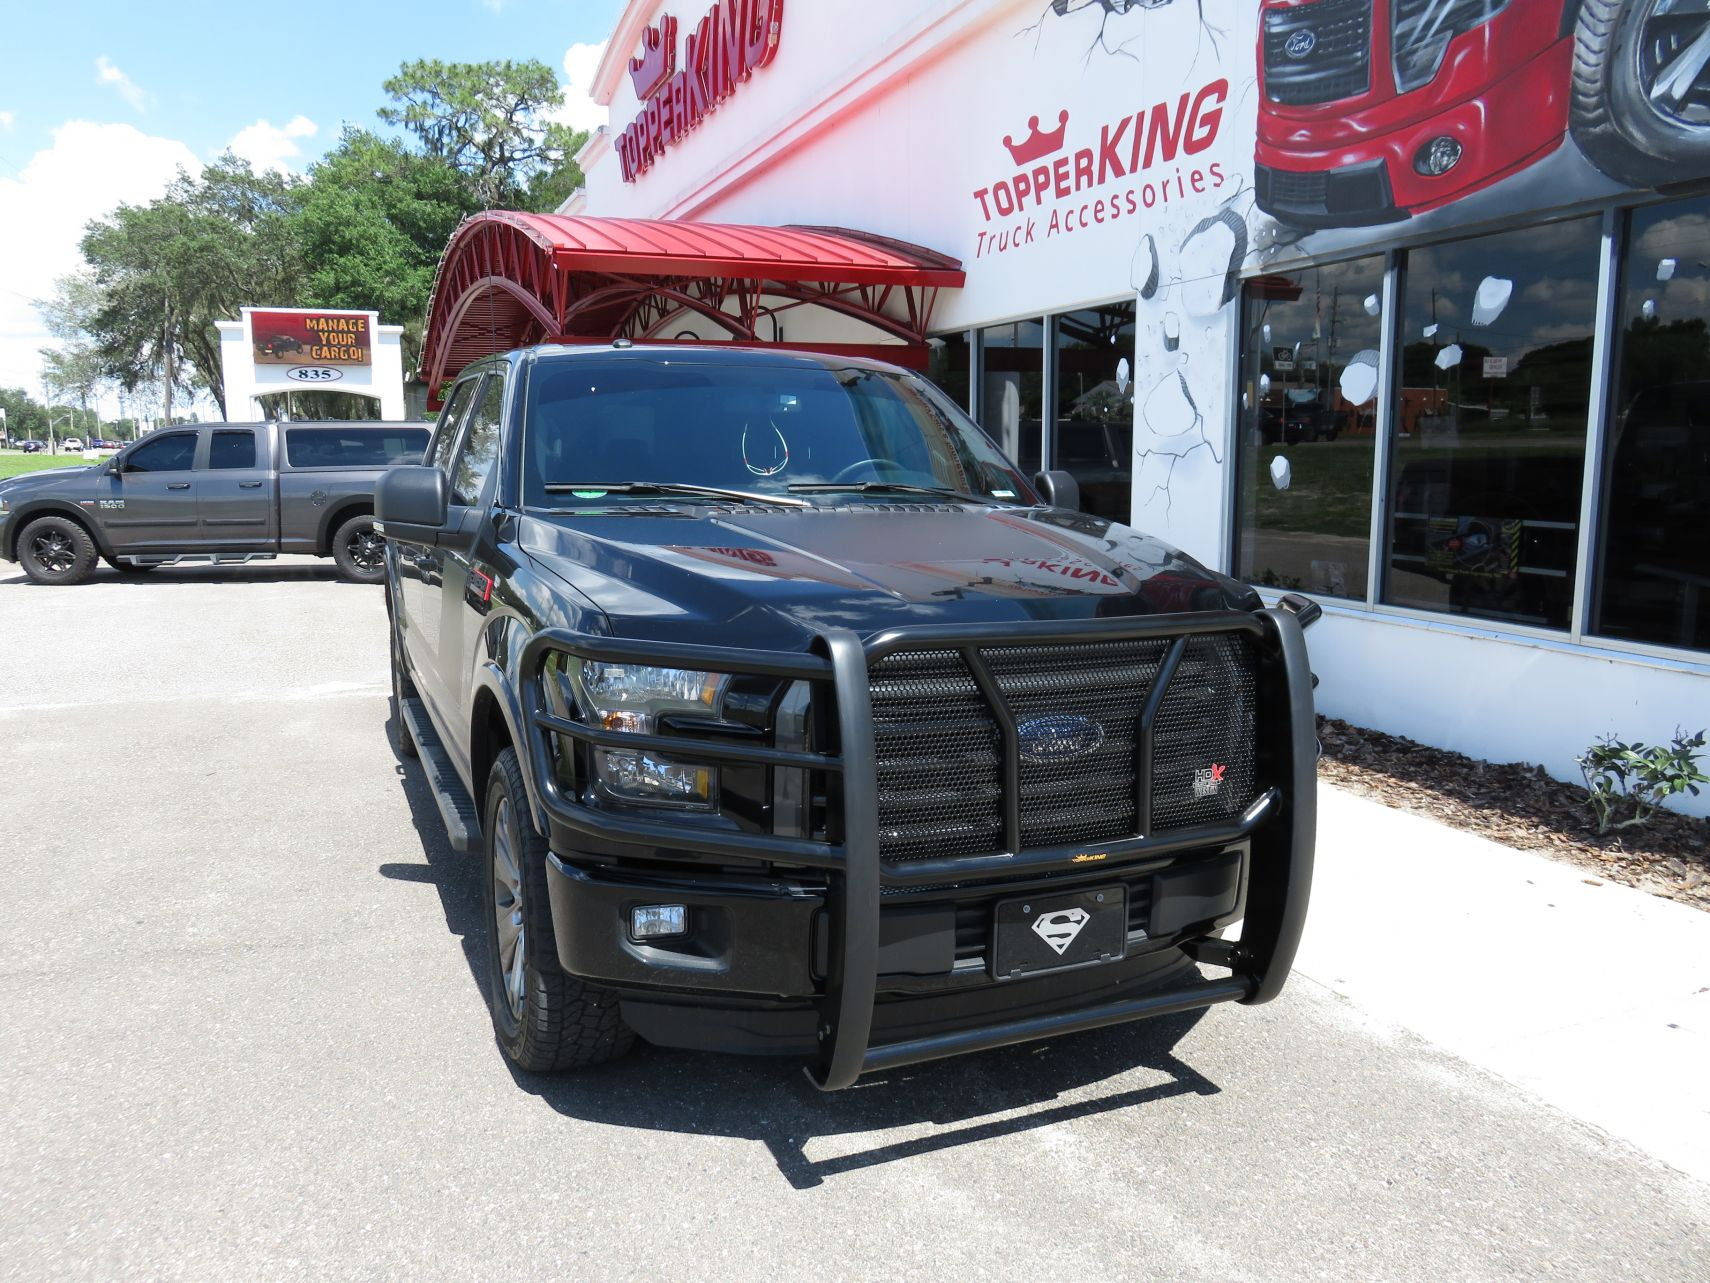 Blacked Out 2017 Ford F150 With Westin Hdx Grill Guard And Running Boards By Topperking In